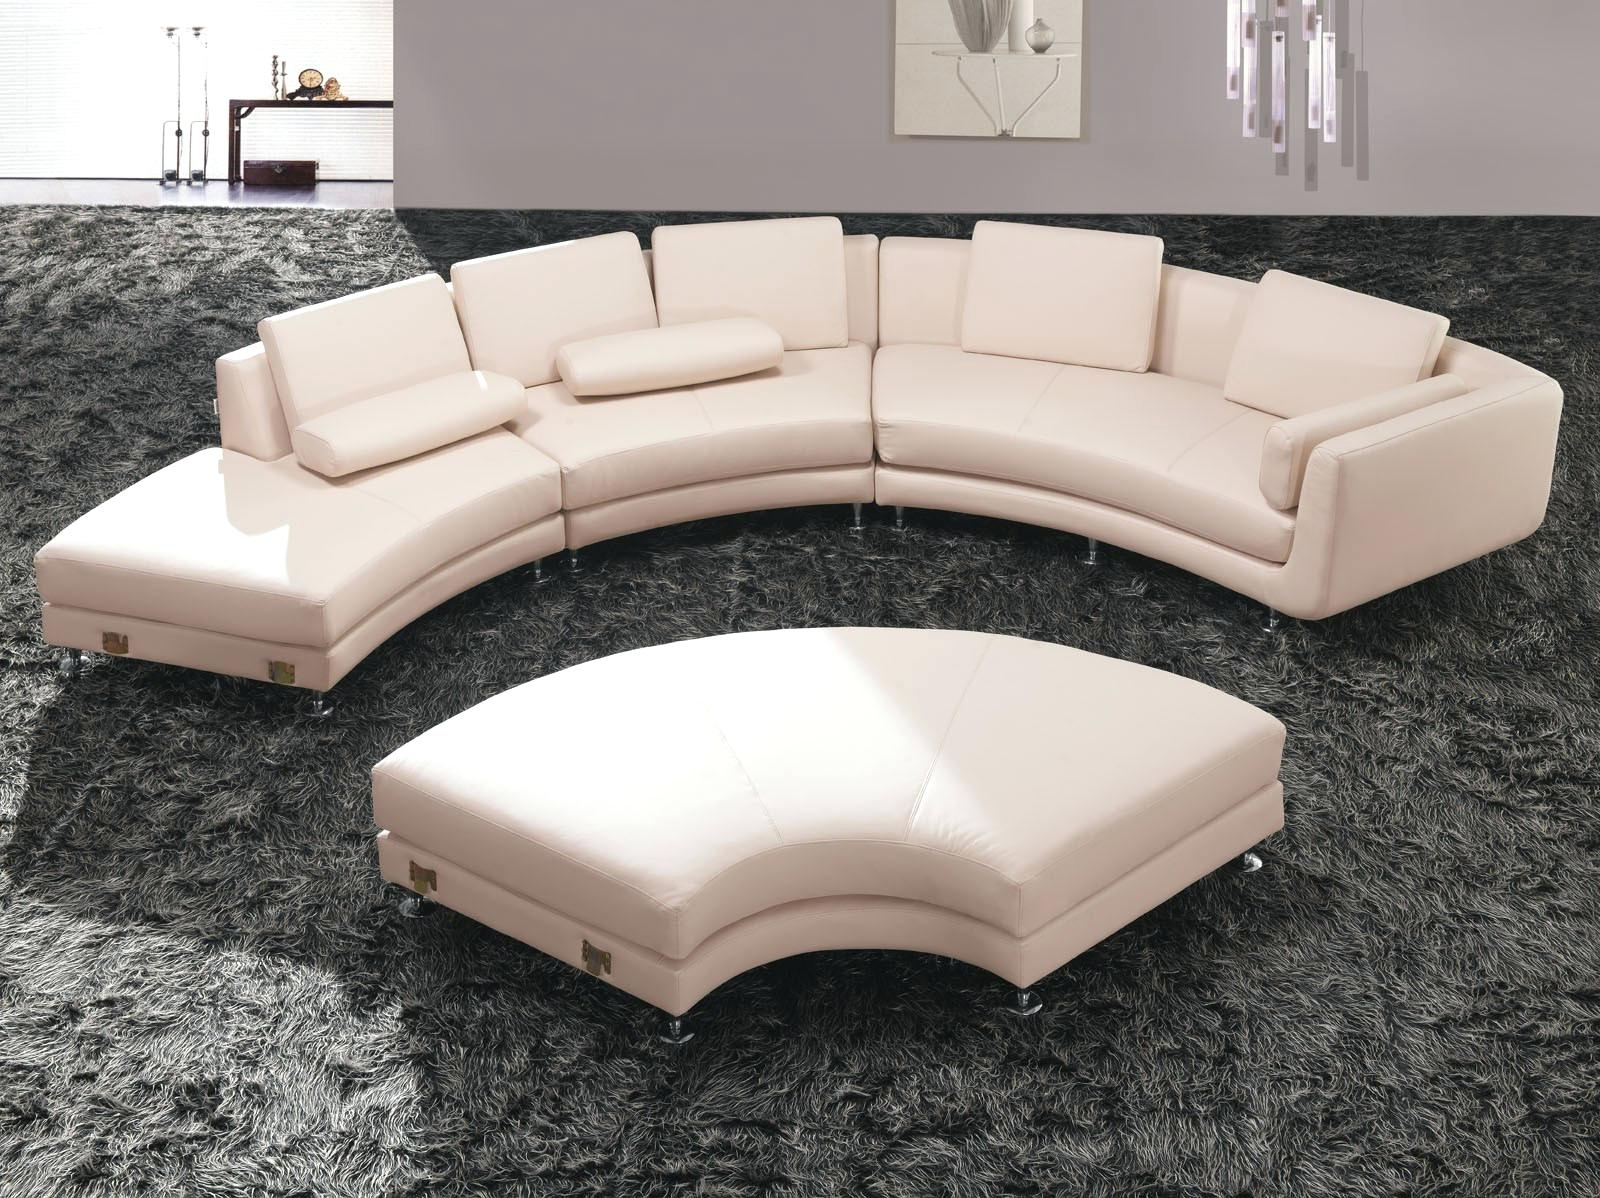 Trendy Vancouver Wa Sectional Sofas For Furniture : 55 Sectional Sofa Sectional Couch Delivery Recliner (View 15 of 20)